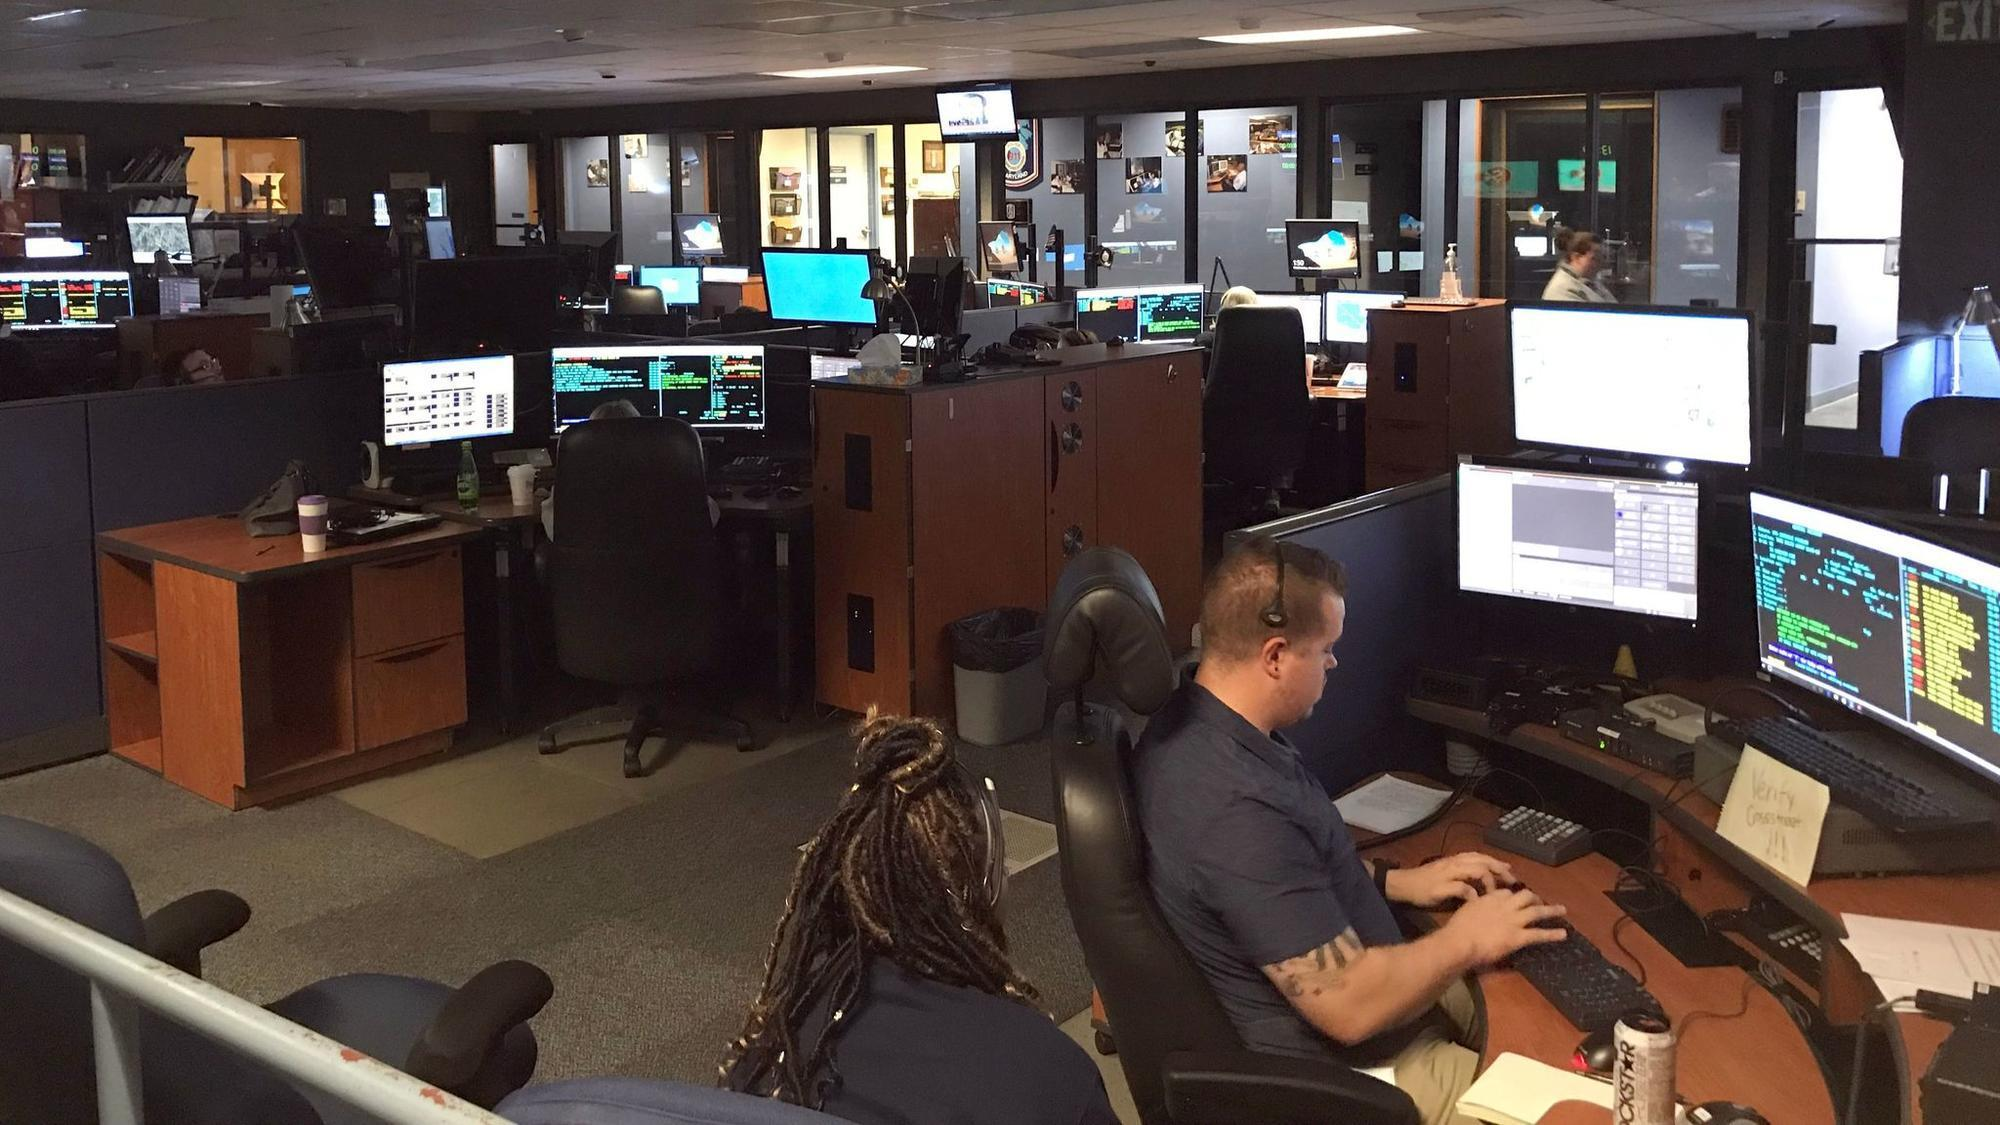 Anne Arundels 911 system sees 22M overhaul  Capital